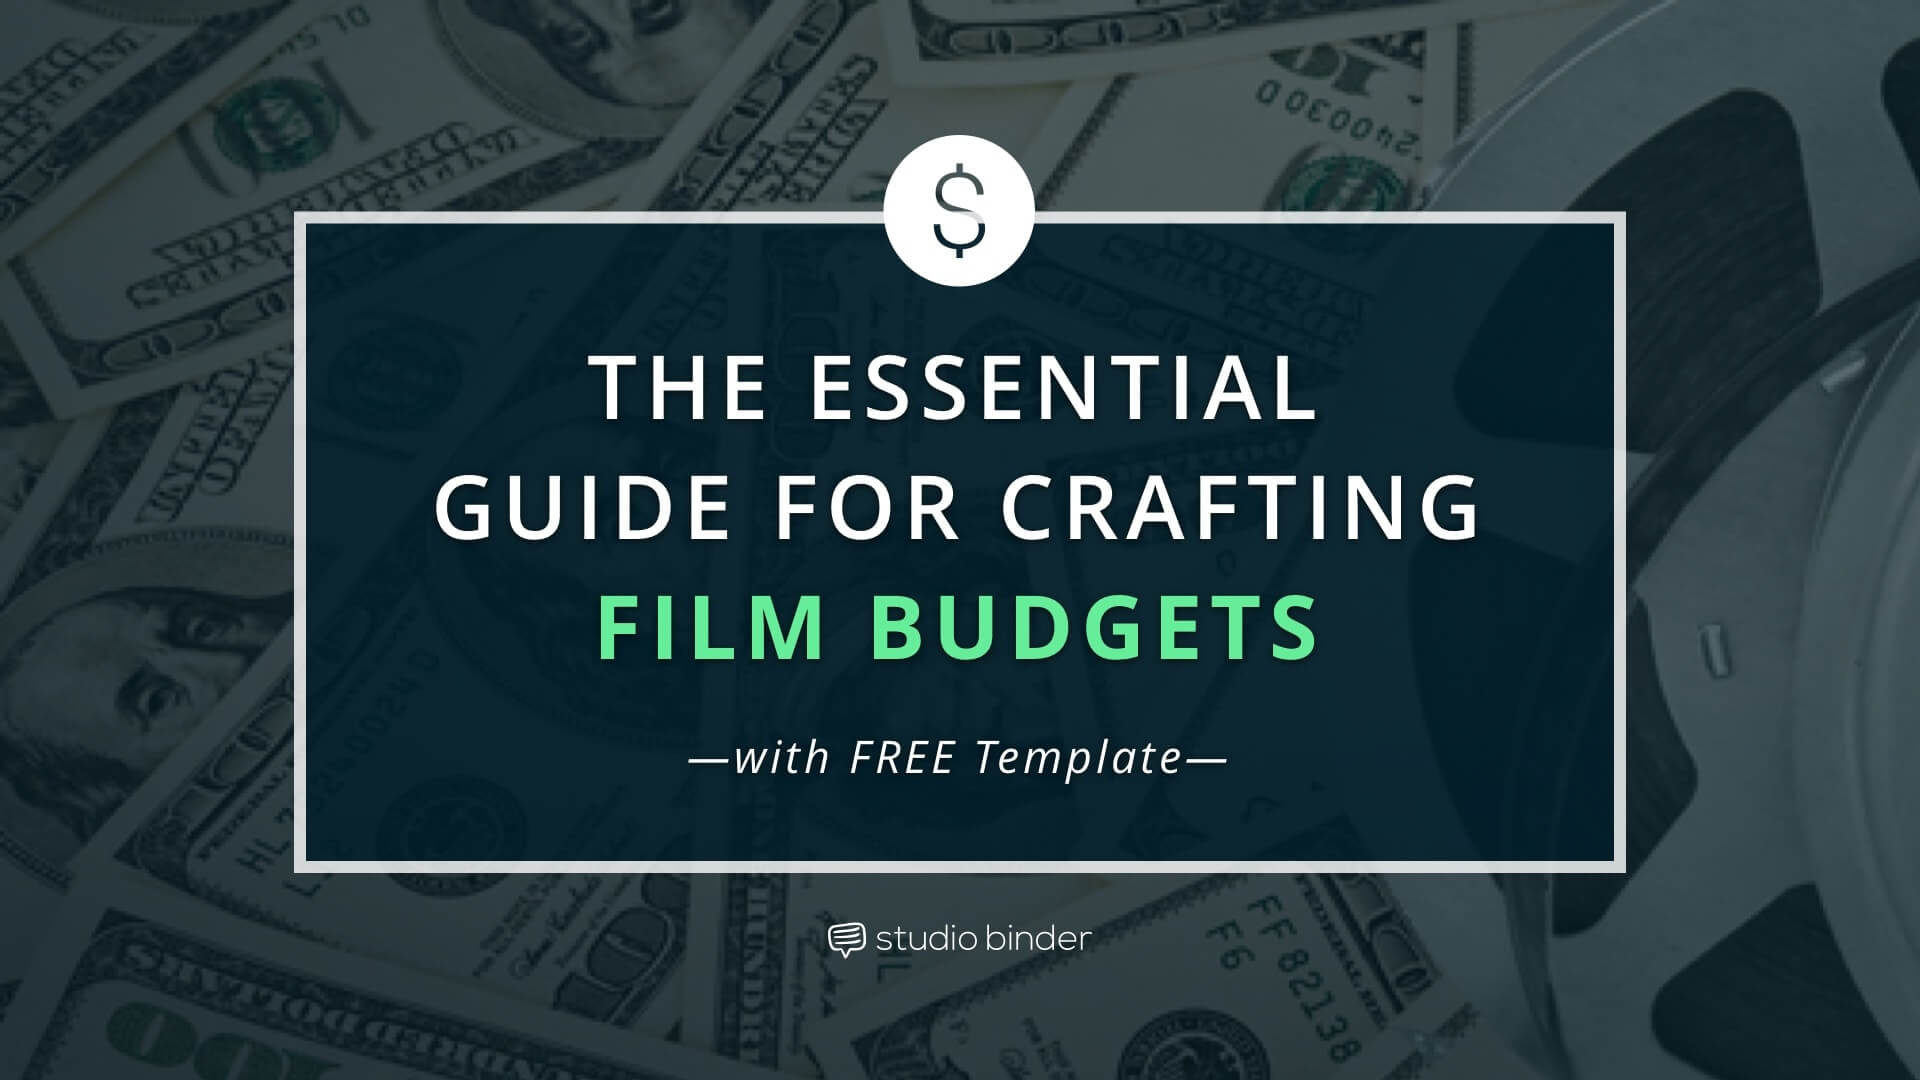 The Essential Guide to Film Budgets [with FREE Film Budget Template]